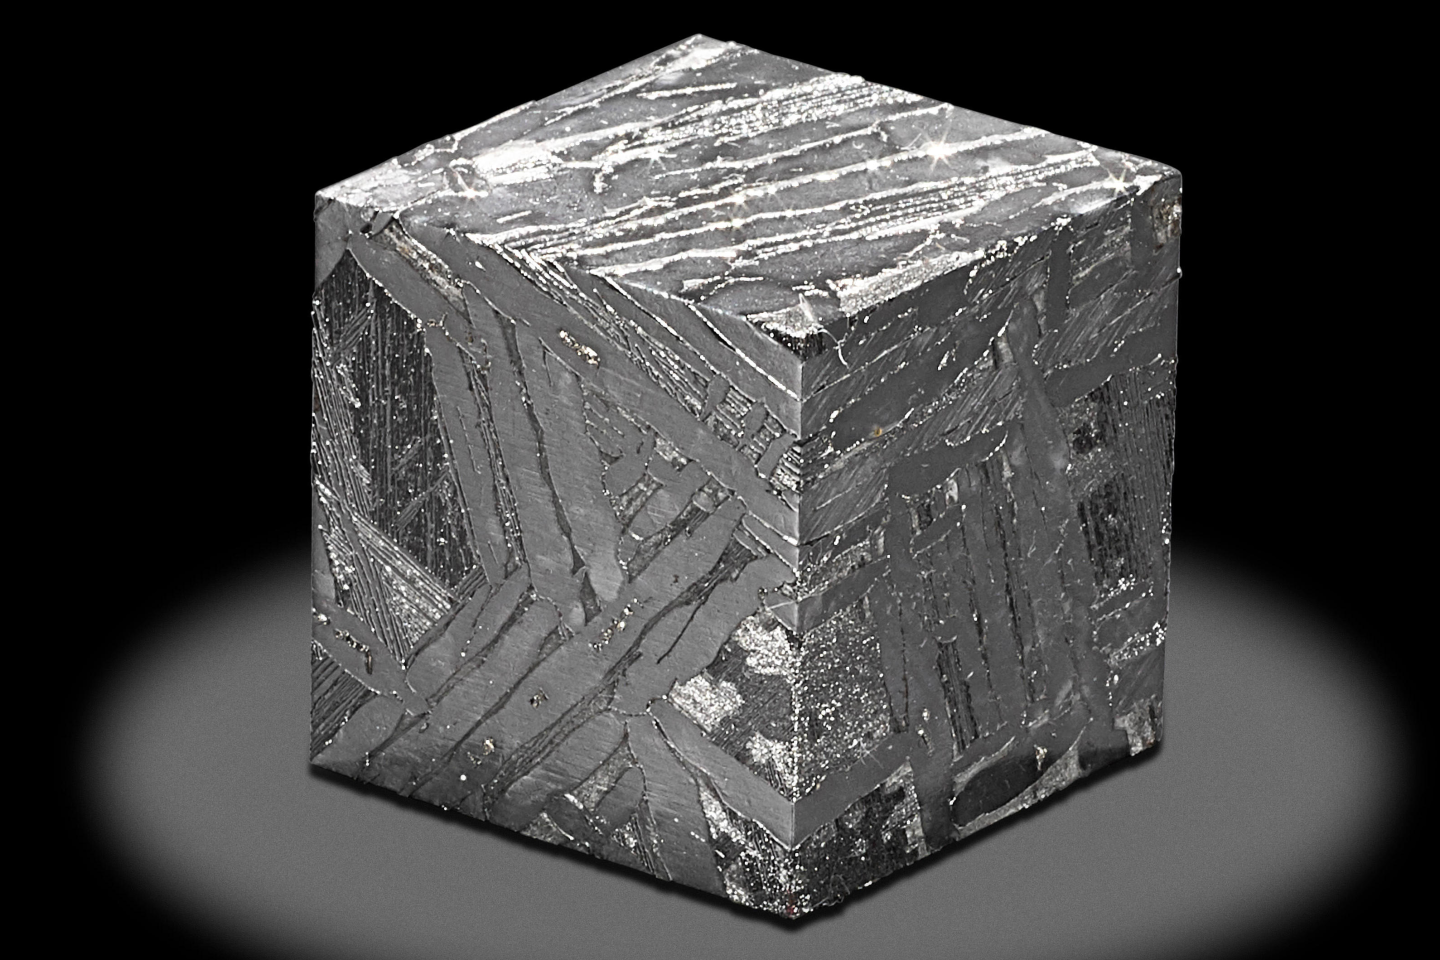 This 3.0 x 3.0 x 3.0 cm cube was cut from the Seymchan meteorite. It weighs 223.9 grams and has an estimate of US$2,200 to $2,800.